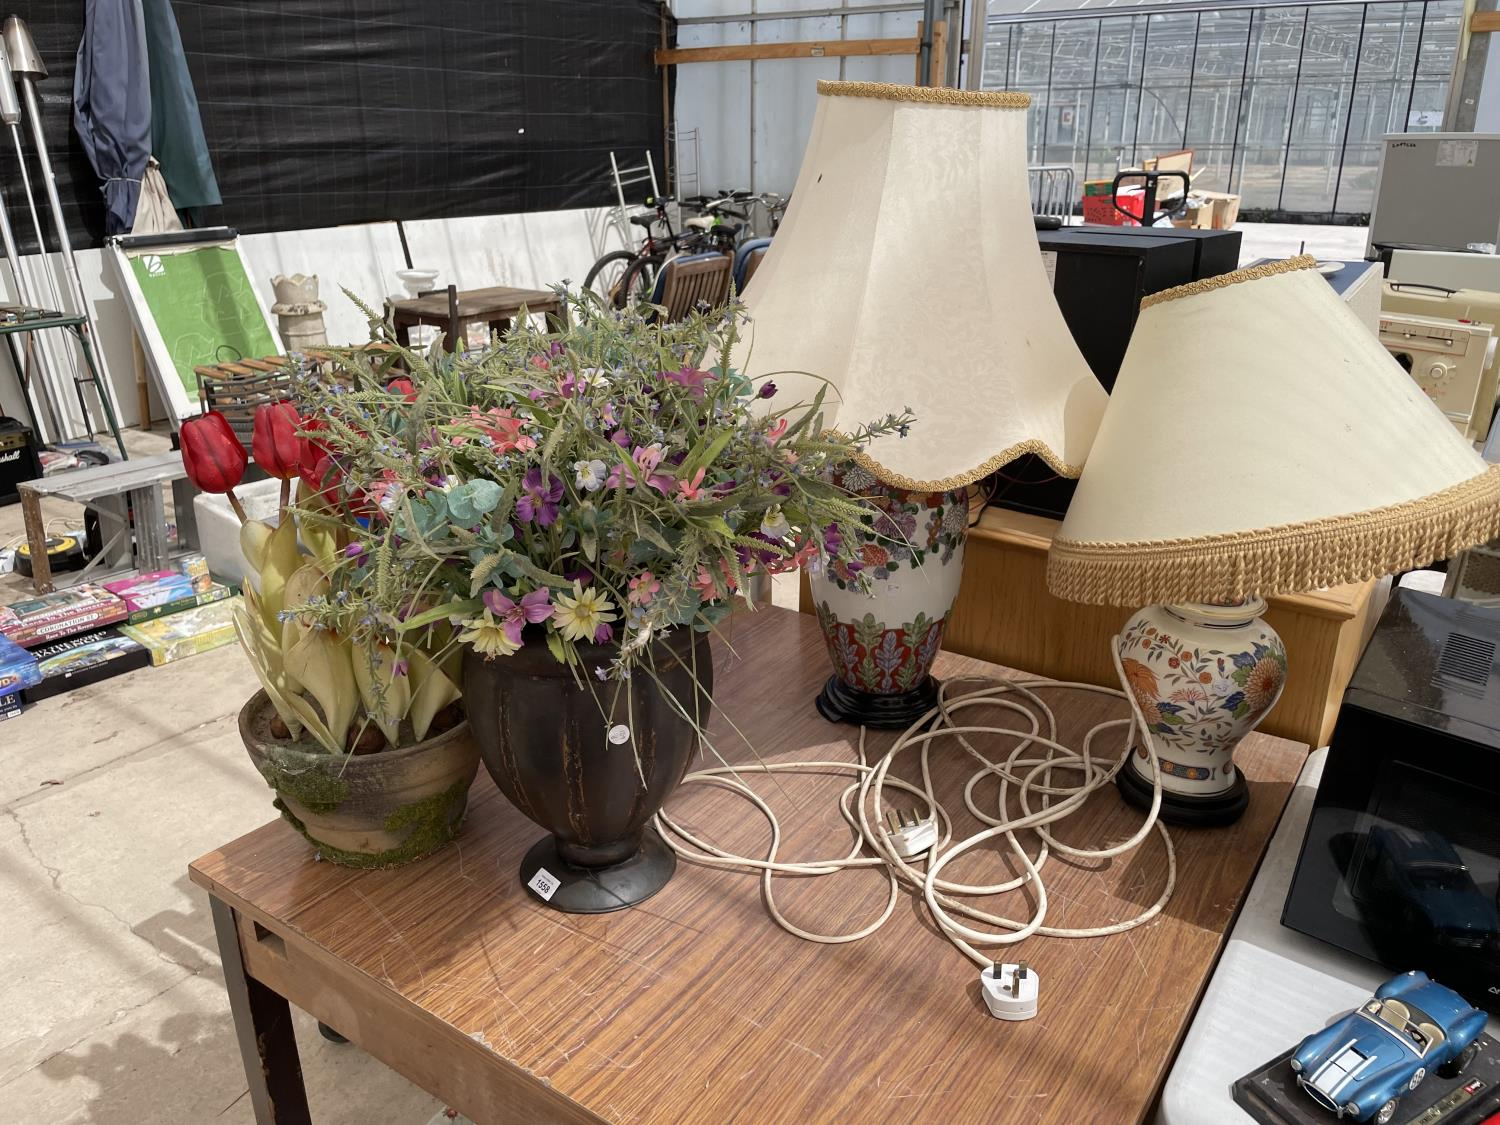 A VASE AND A PLANT POT CONTAINING ARTIFICIAL FLOWERS - Image 2 of 6